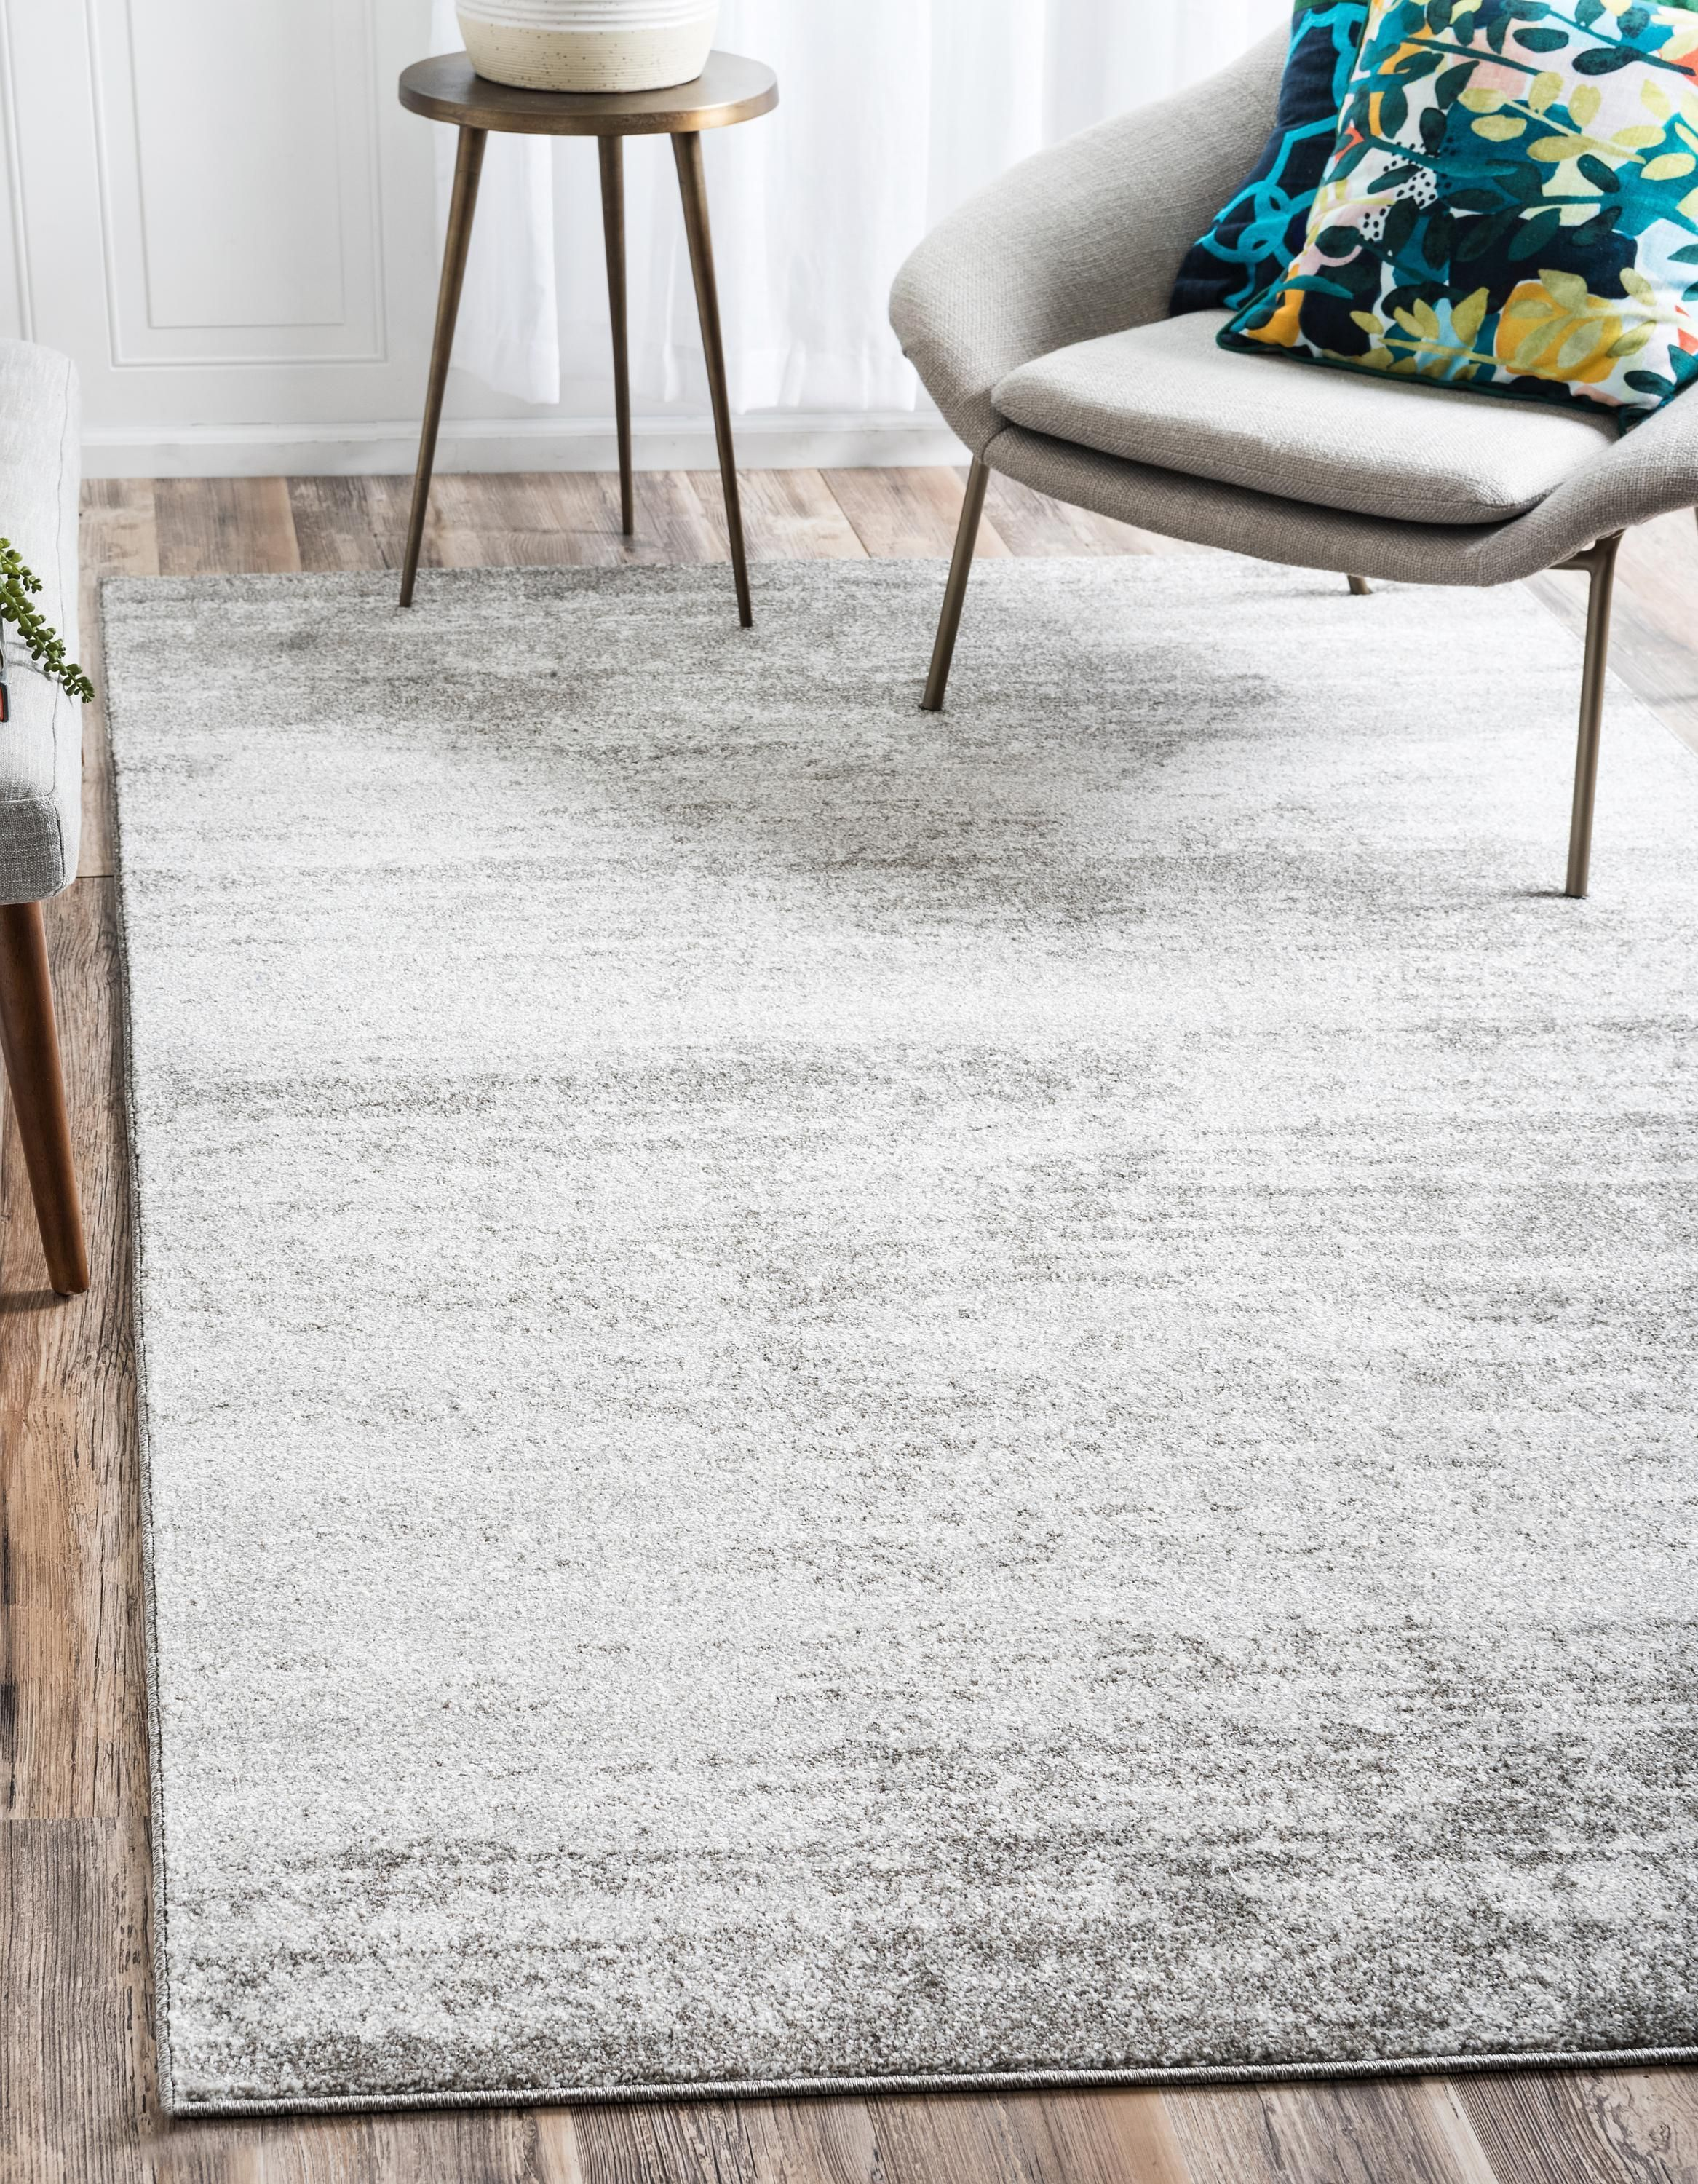 Gray 7 X 10 Loft Rug Area Rugs Irugs Uk With Images Loft Rugs Loft Area Rug Gray Rug Living Room